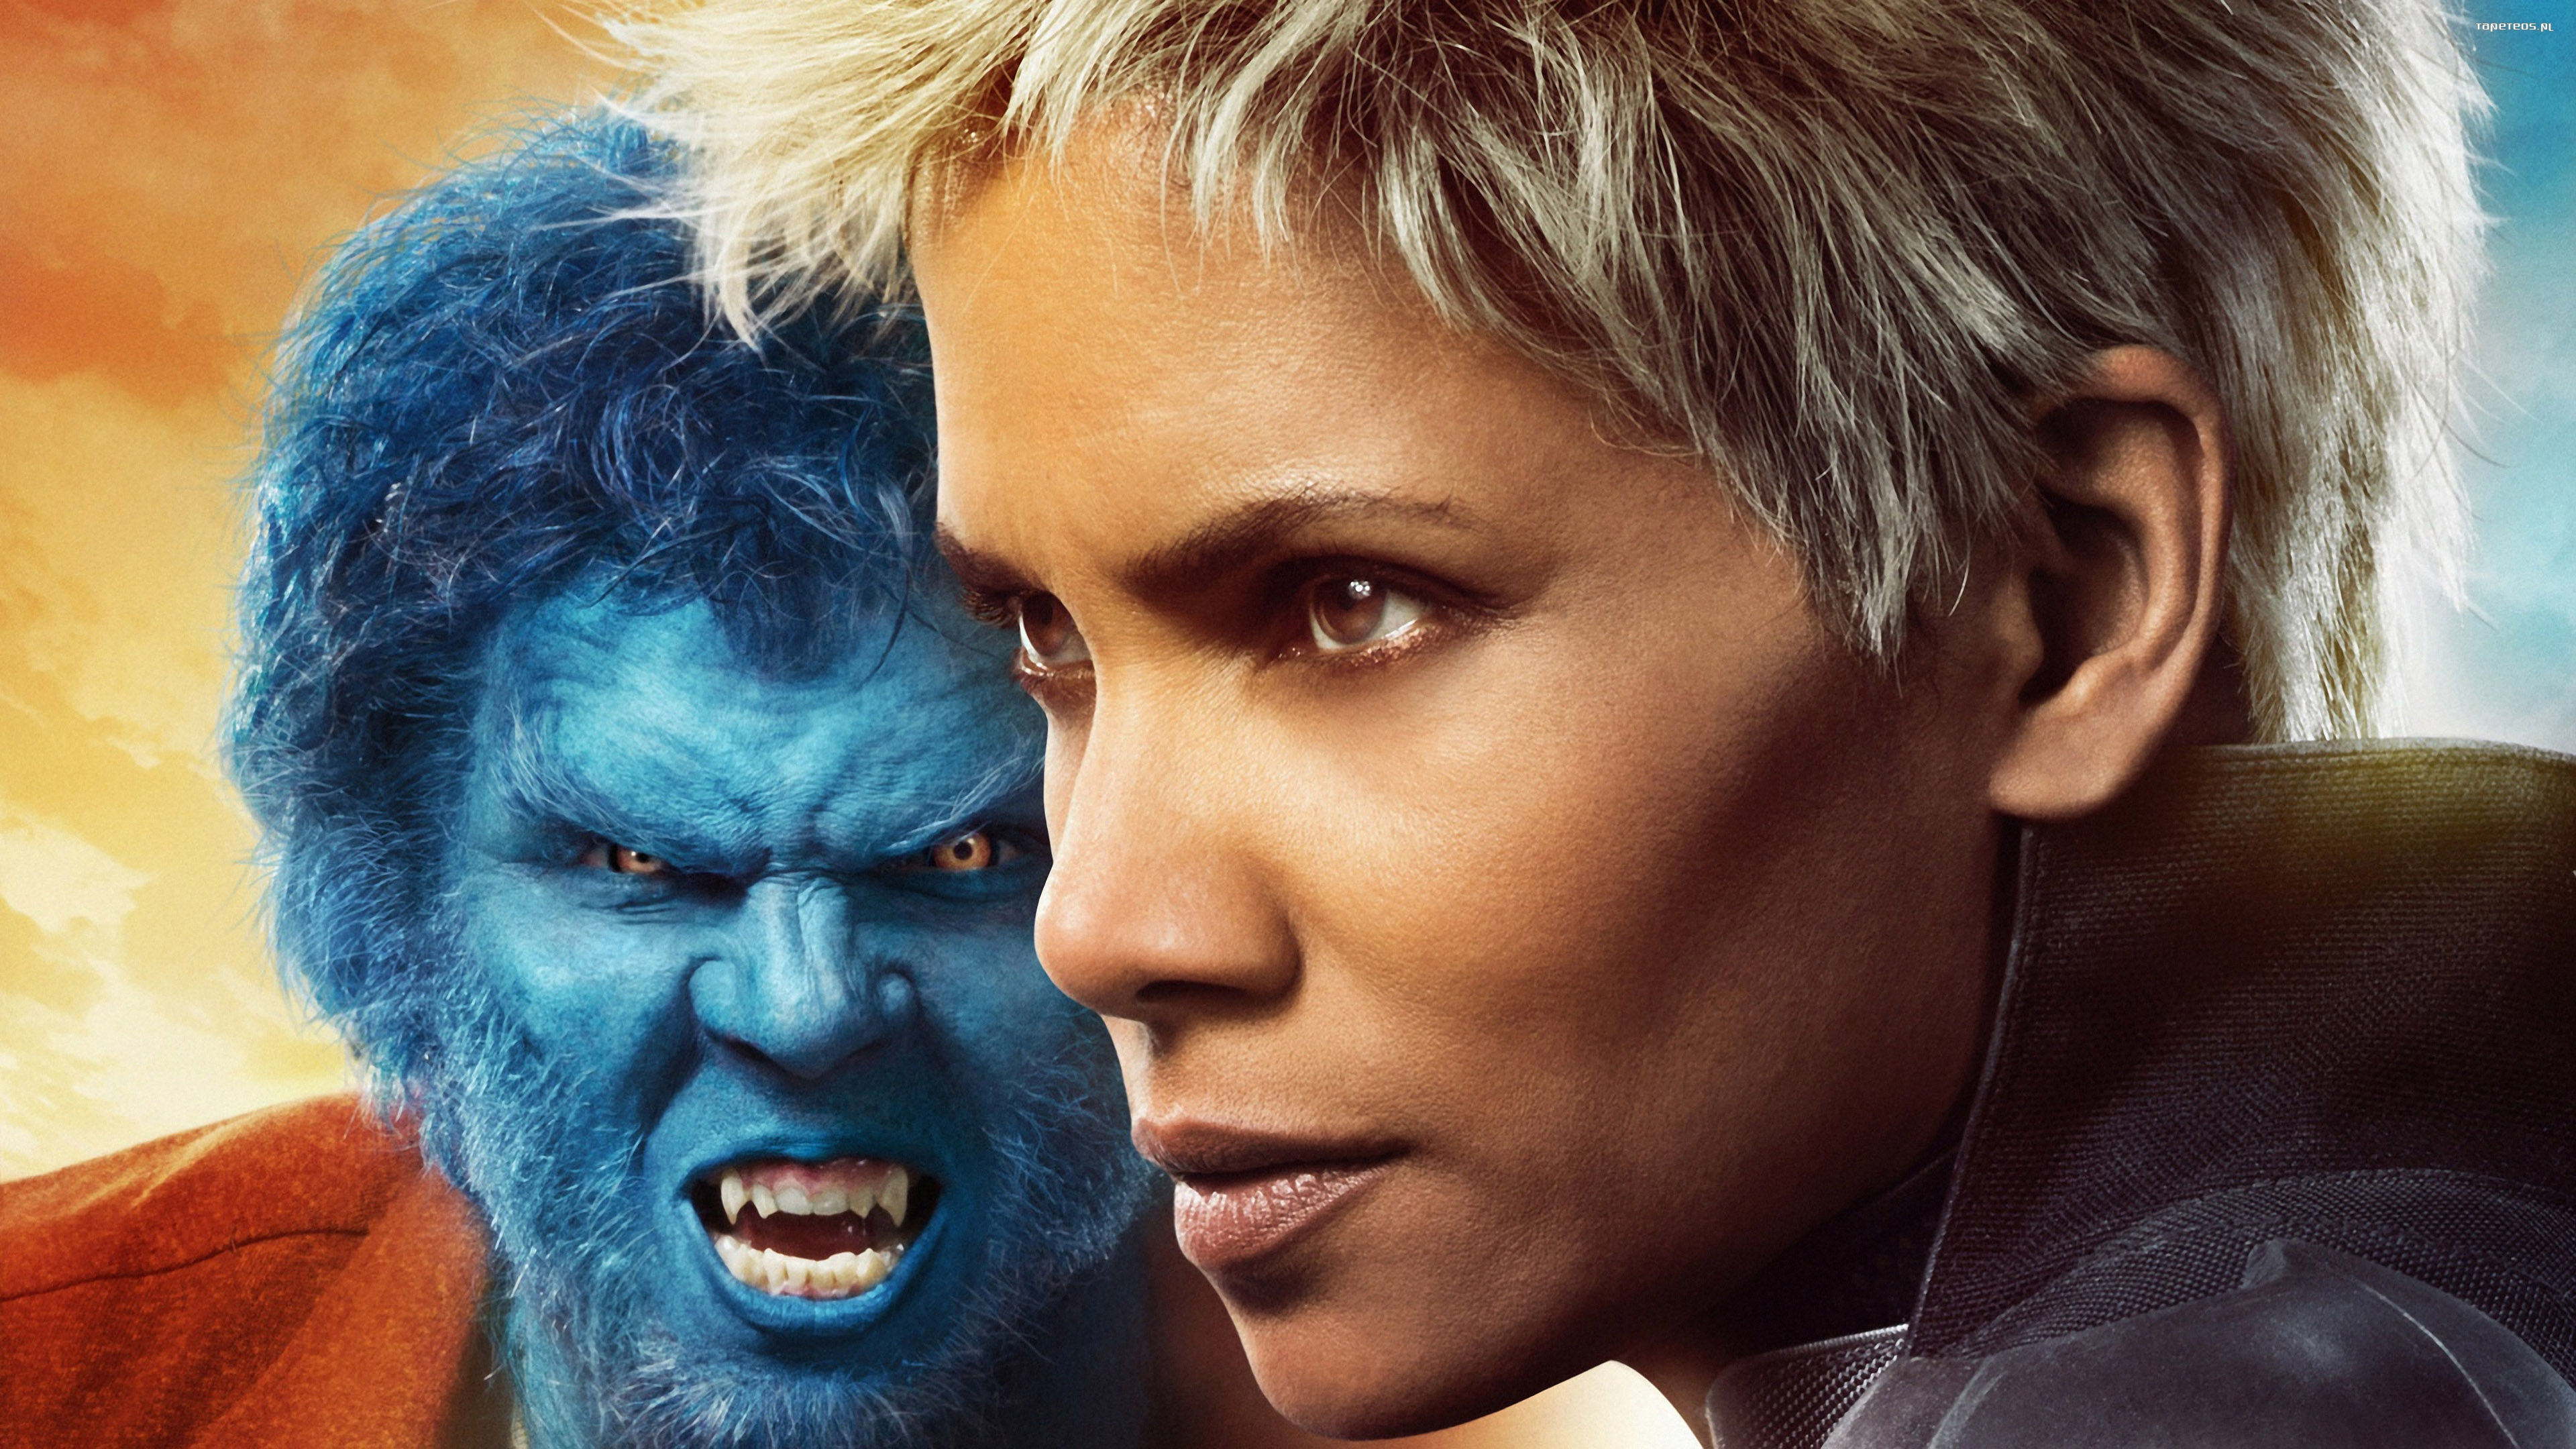 X-Men Days of Future Past 053 Halle Berry, Storm